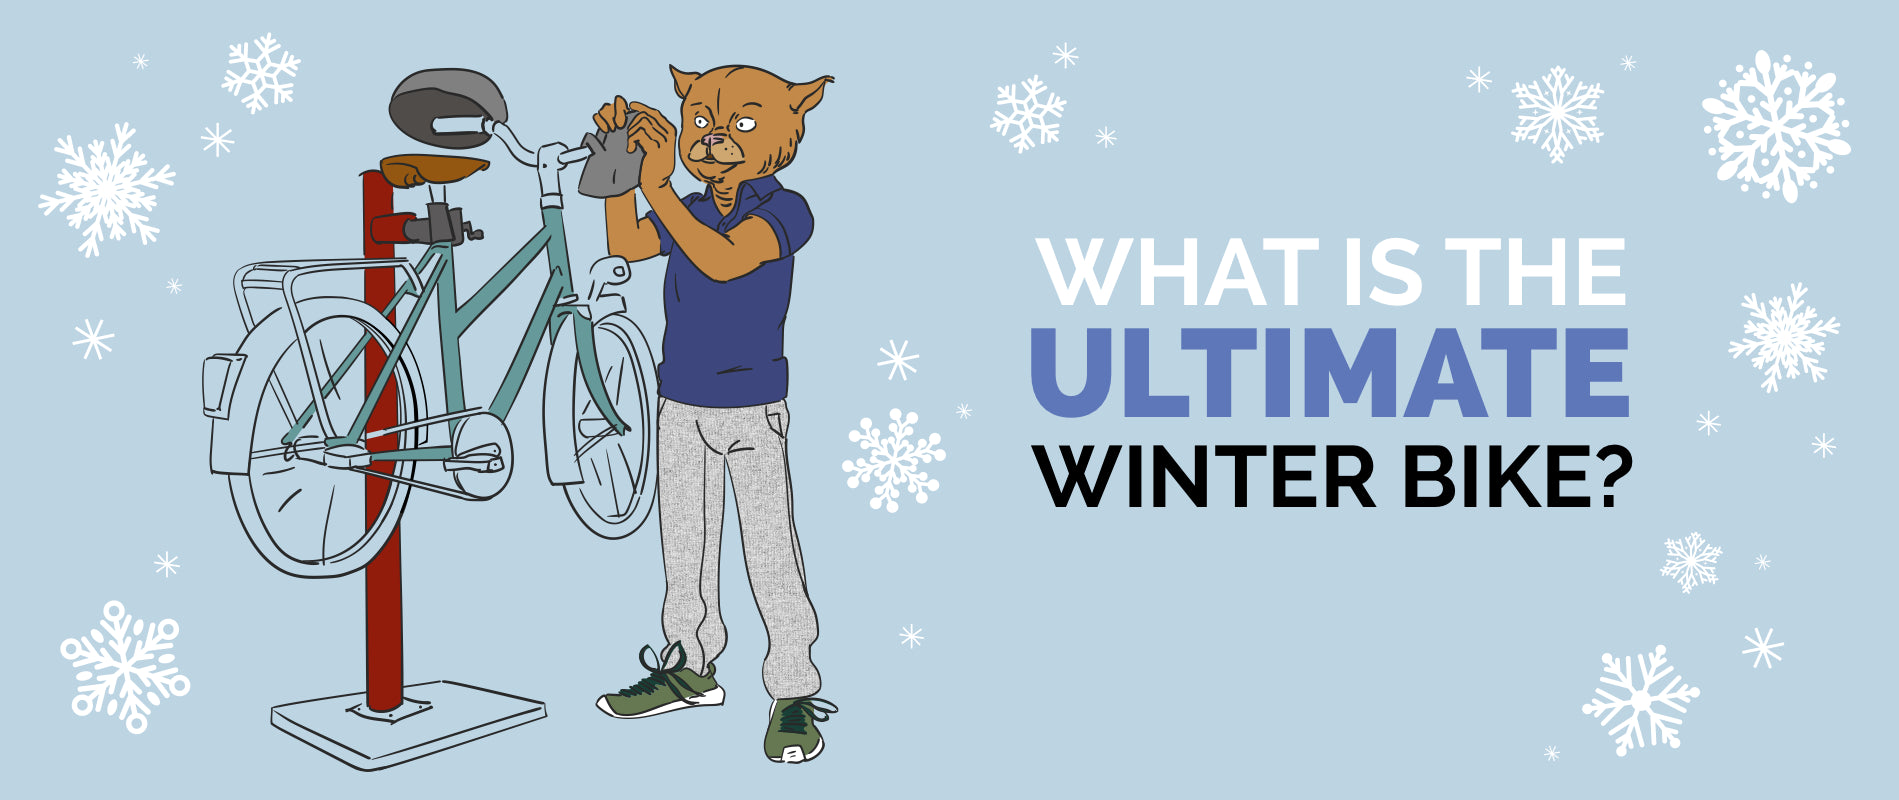 What's the ultimate winter bike?